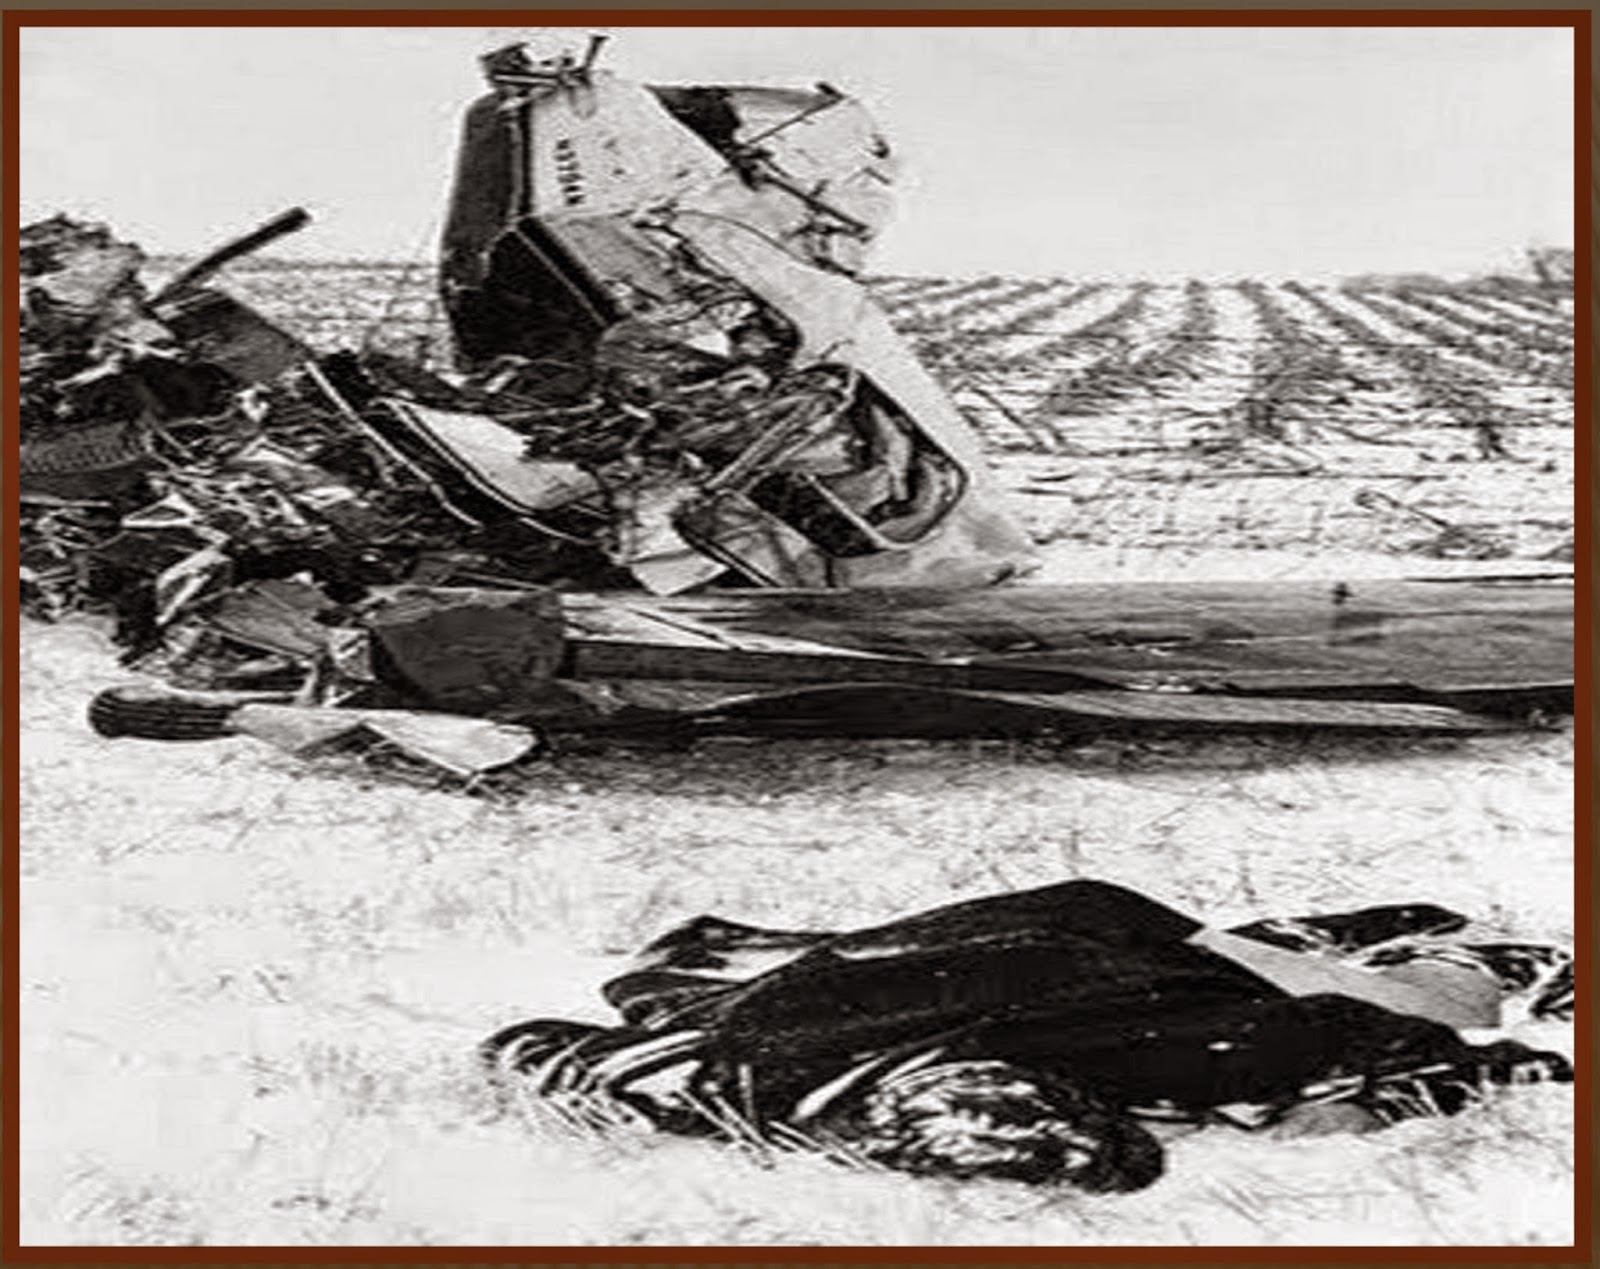 February 3, 1959. Ritchie Valens lies in the foreground, Buddy Holly is Buddy holly plane crash photos